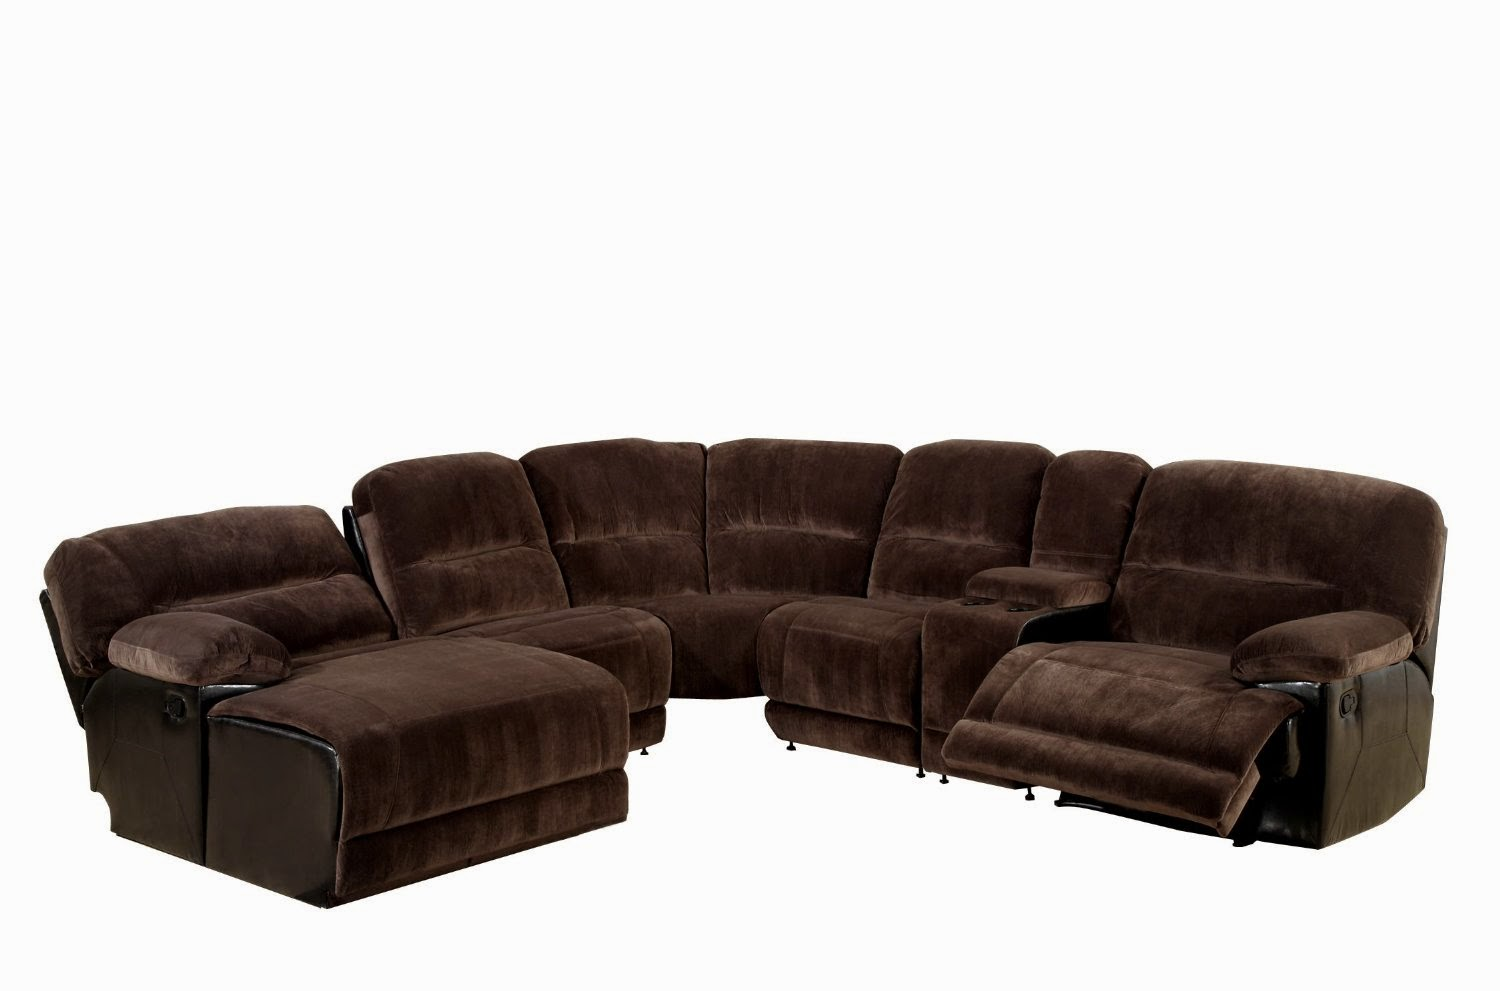 Reclining Sofas For Sale Cheap Saddle Microfiber Contemporary Reclining Sectional Sofa